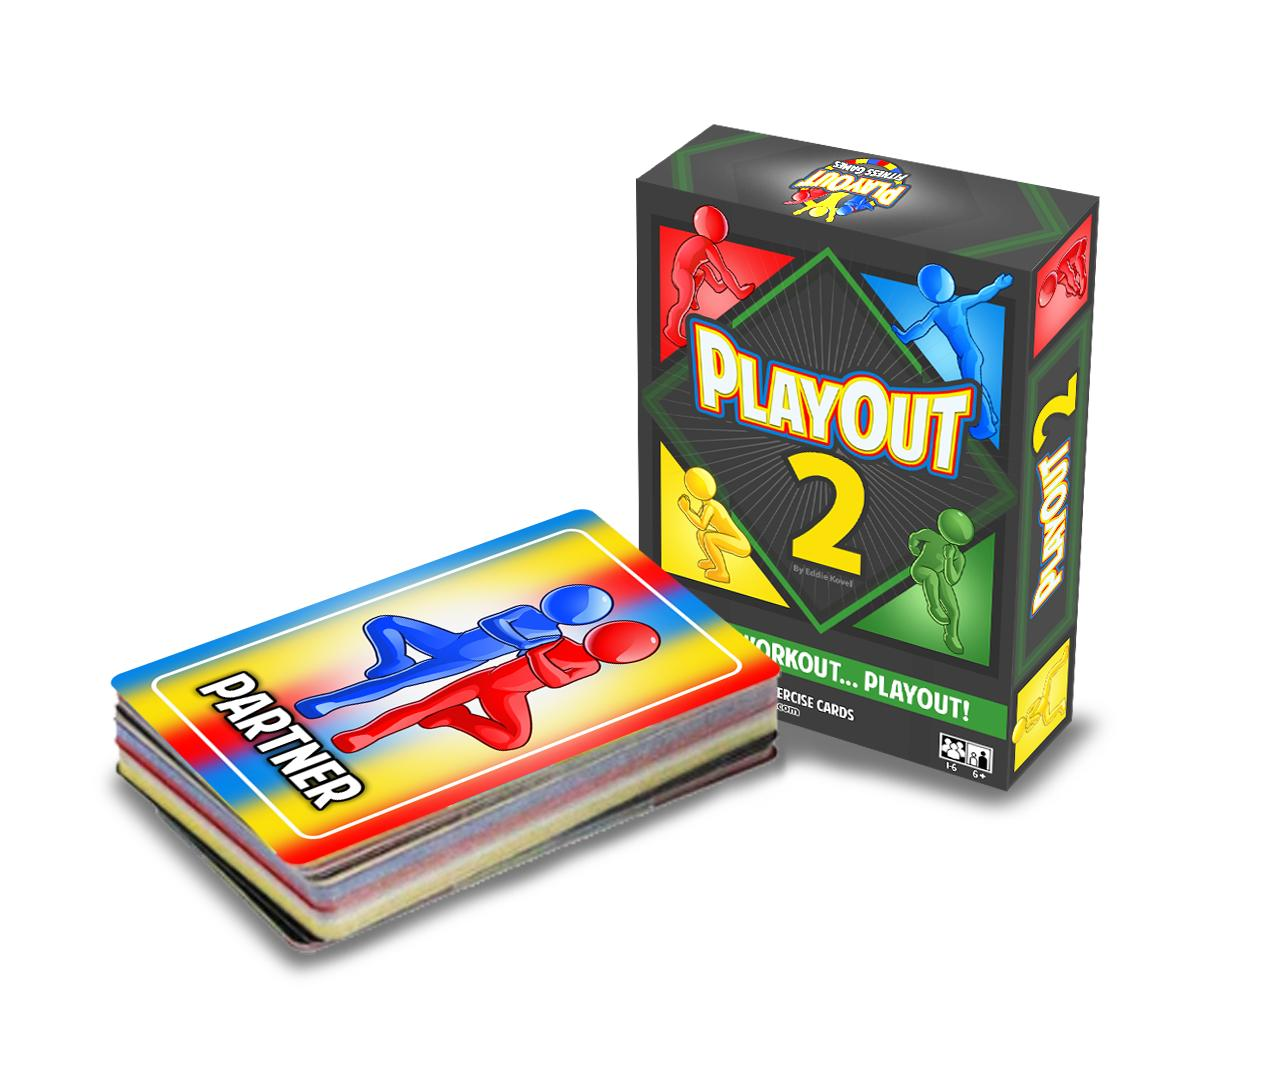 Playout 2: The Expansion